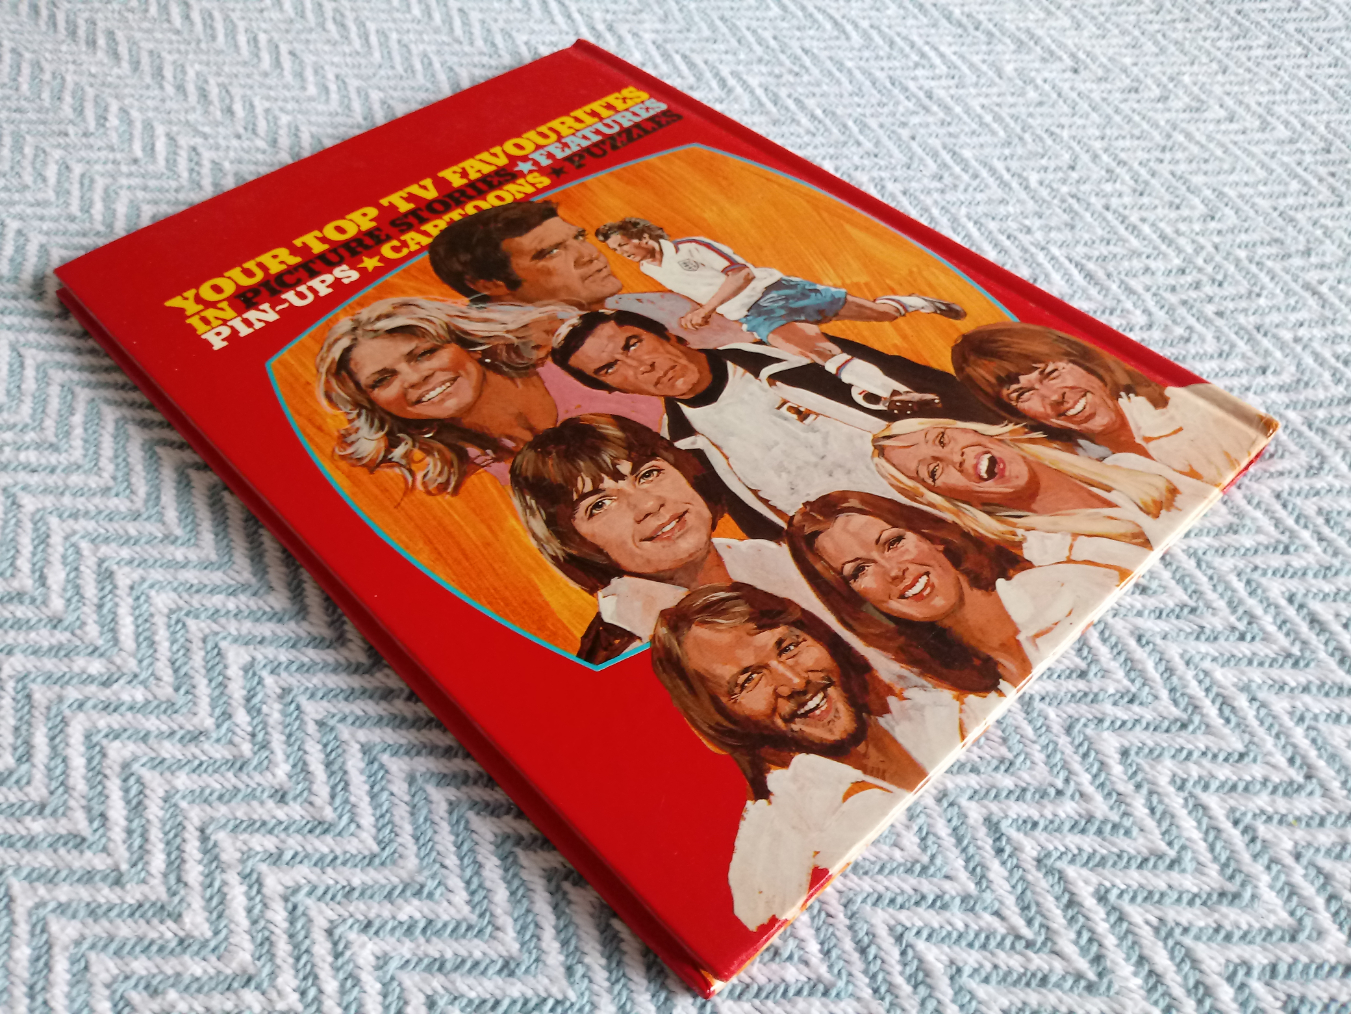 Look-In Television Annual hardback book 77 pages Published 1977 Independent Television - Image 2 of 3